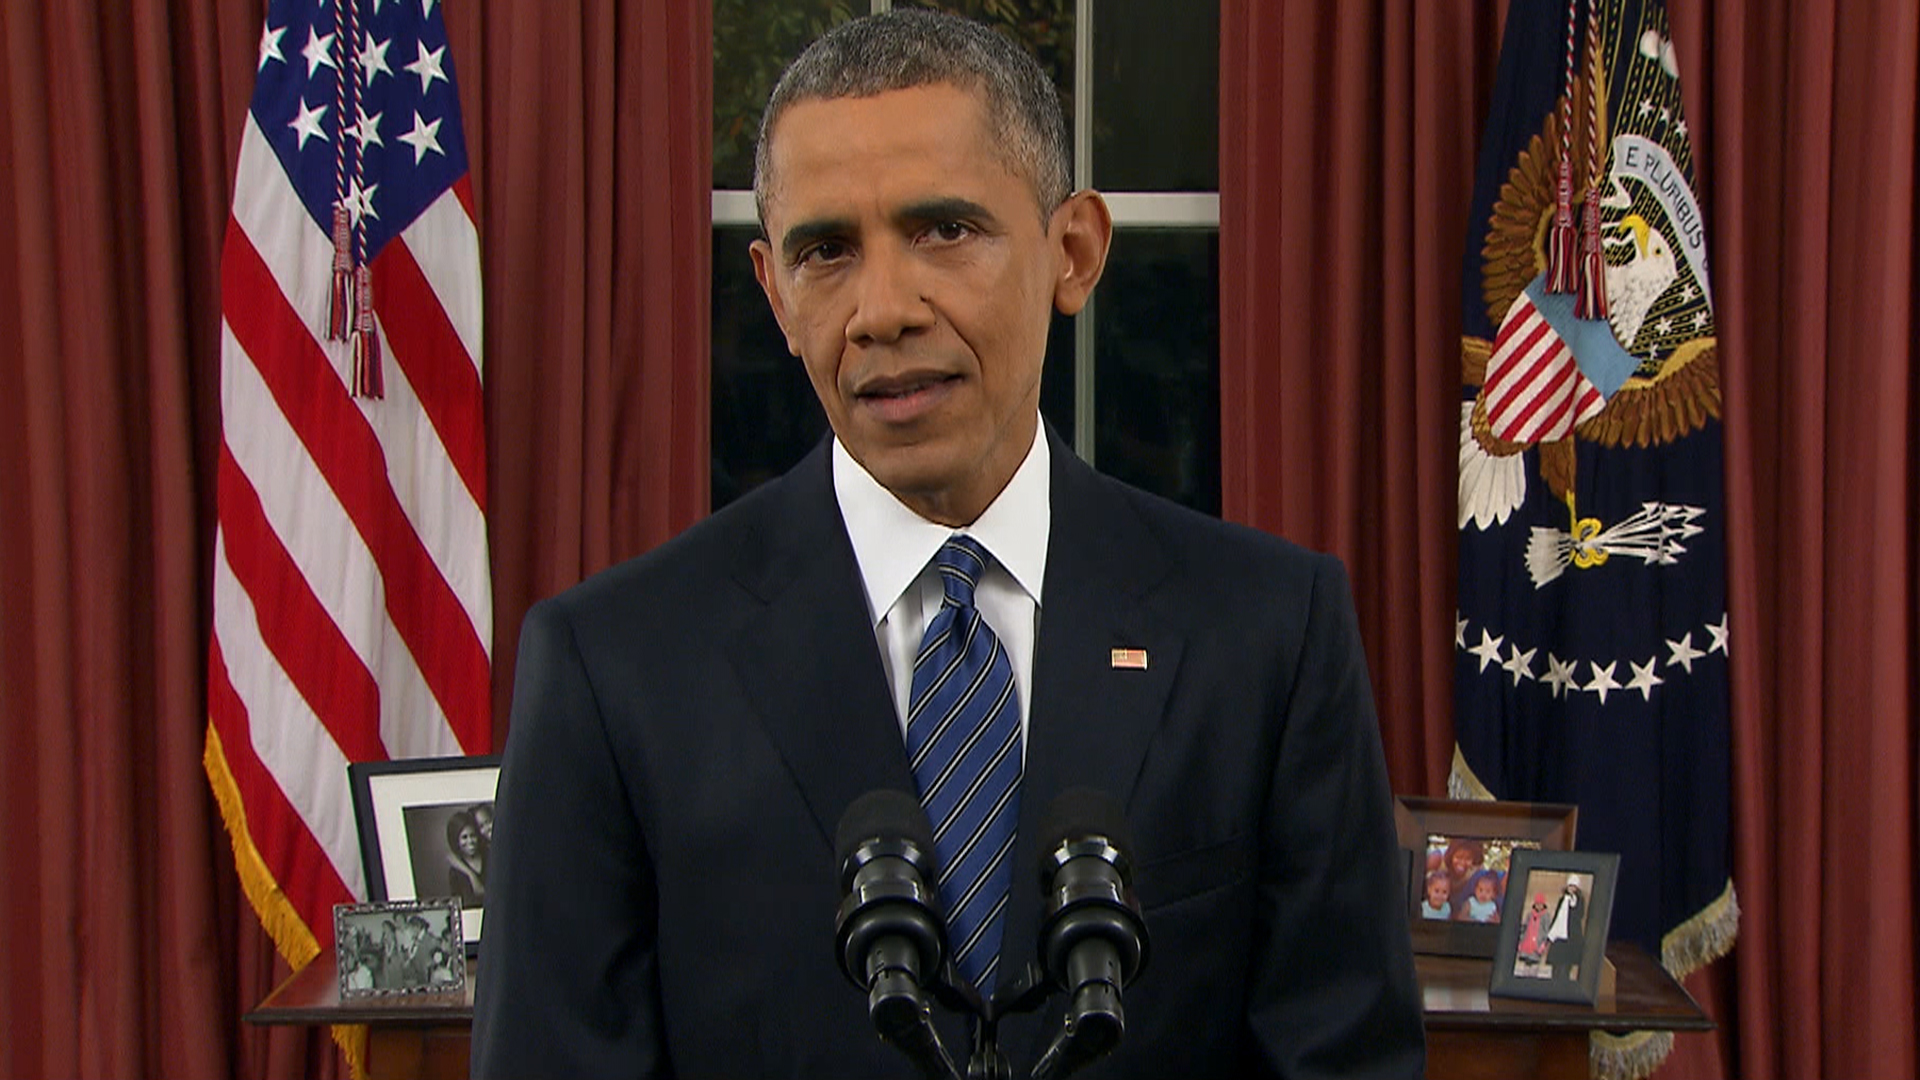 Obama to Nation: Terrorist Threat to U.S. Is 'Evolving' but Beatable